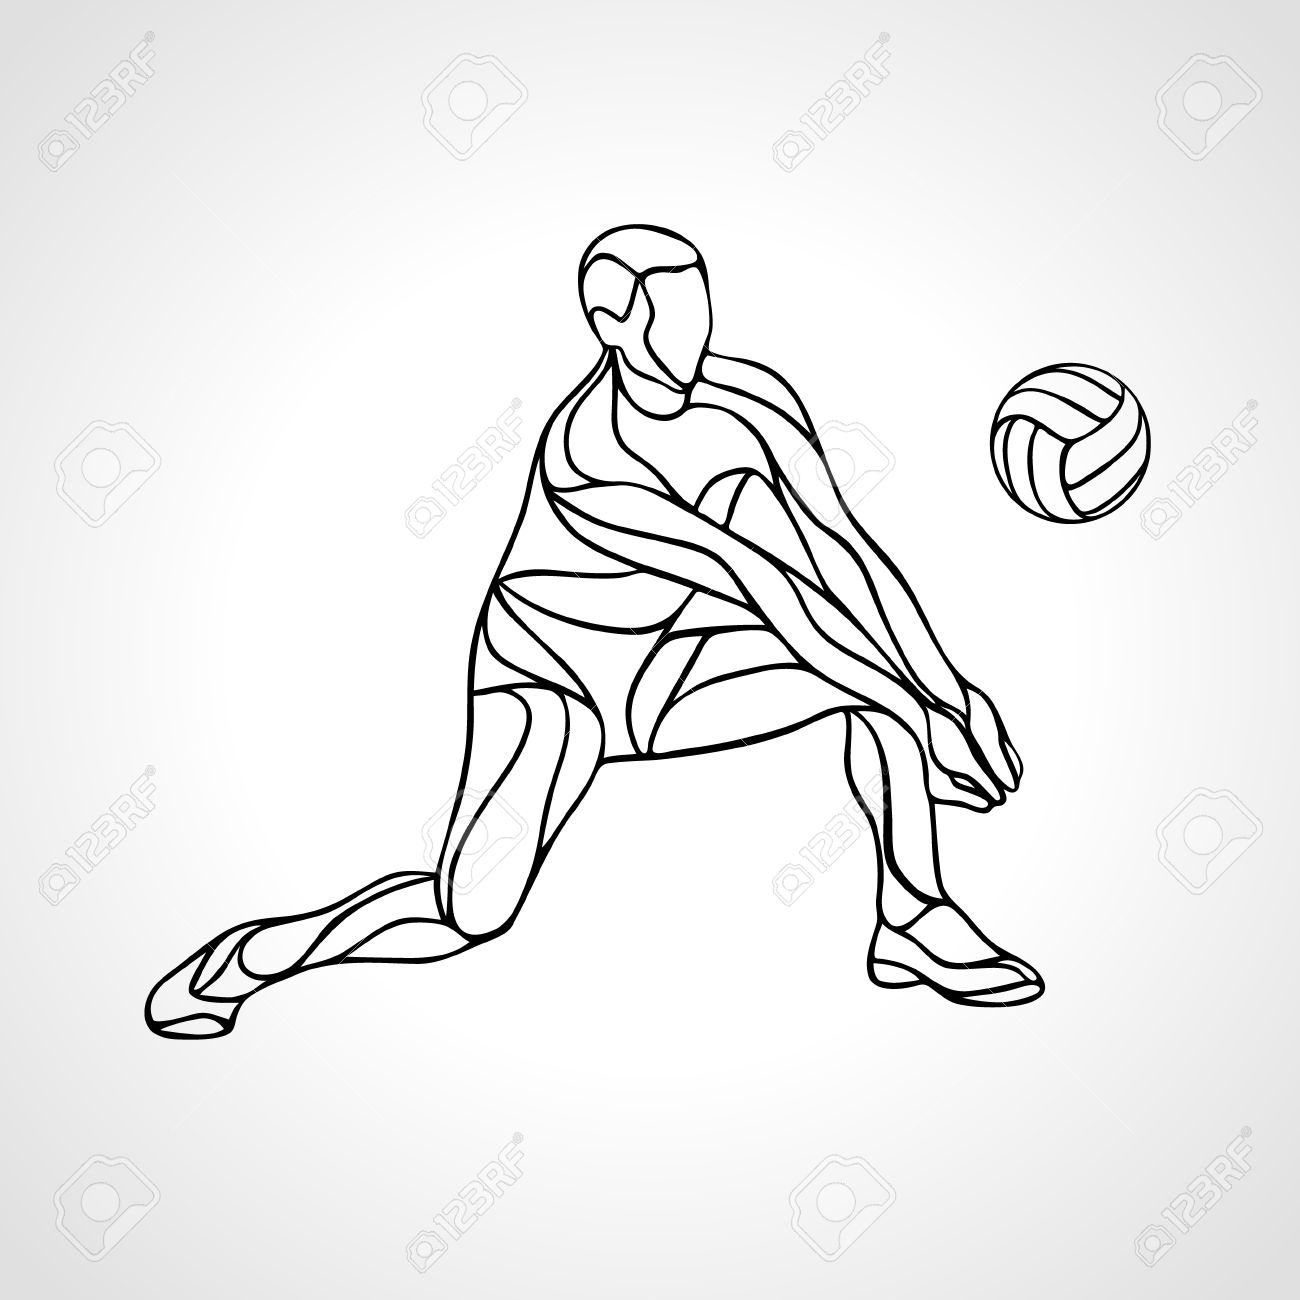 Volleyball Player Receiving Feed Outline Silhouette Of A Abstract Royalty Free Cliparts Vectors And Stock Illustration Image 60022039